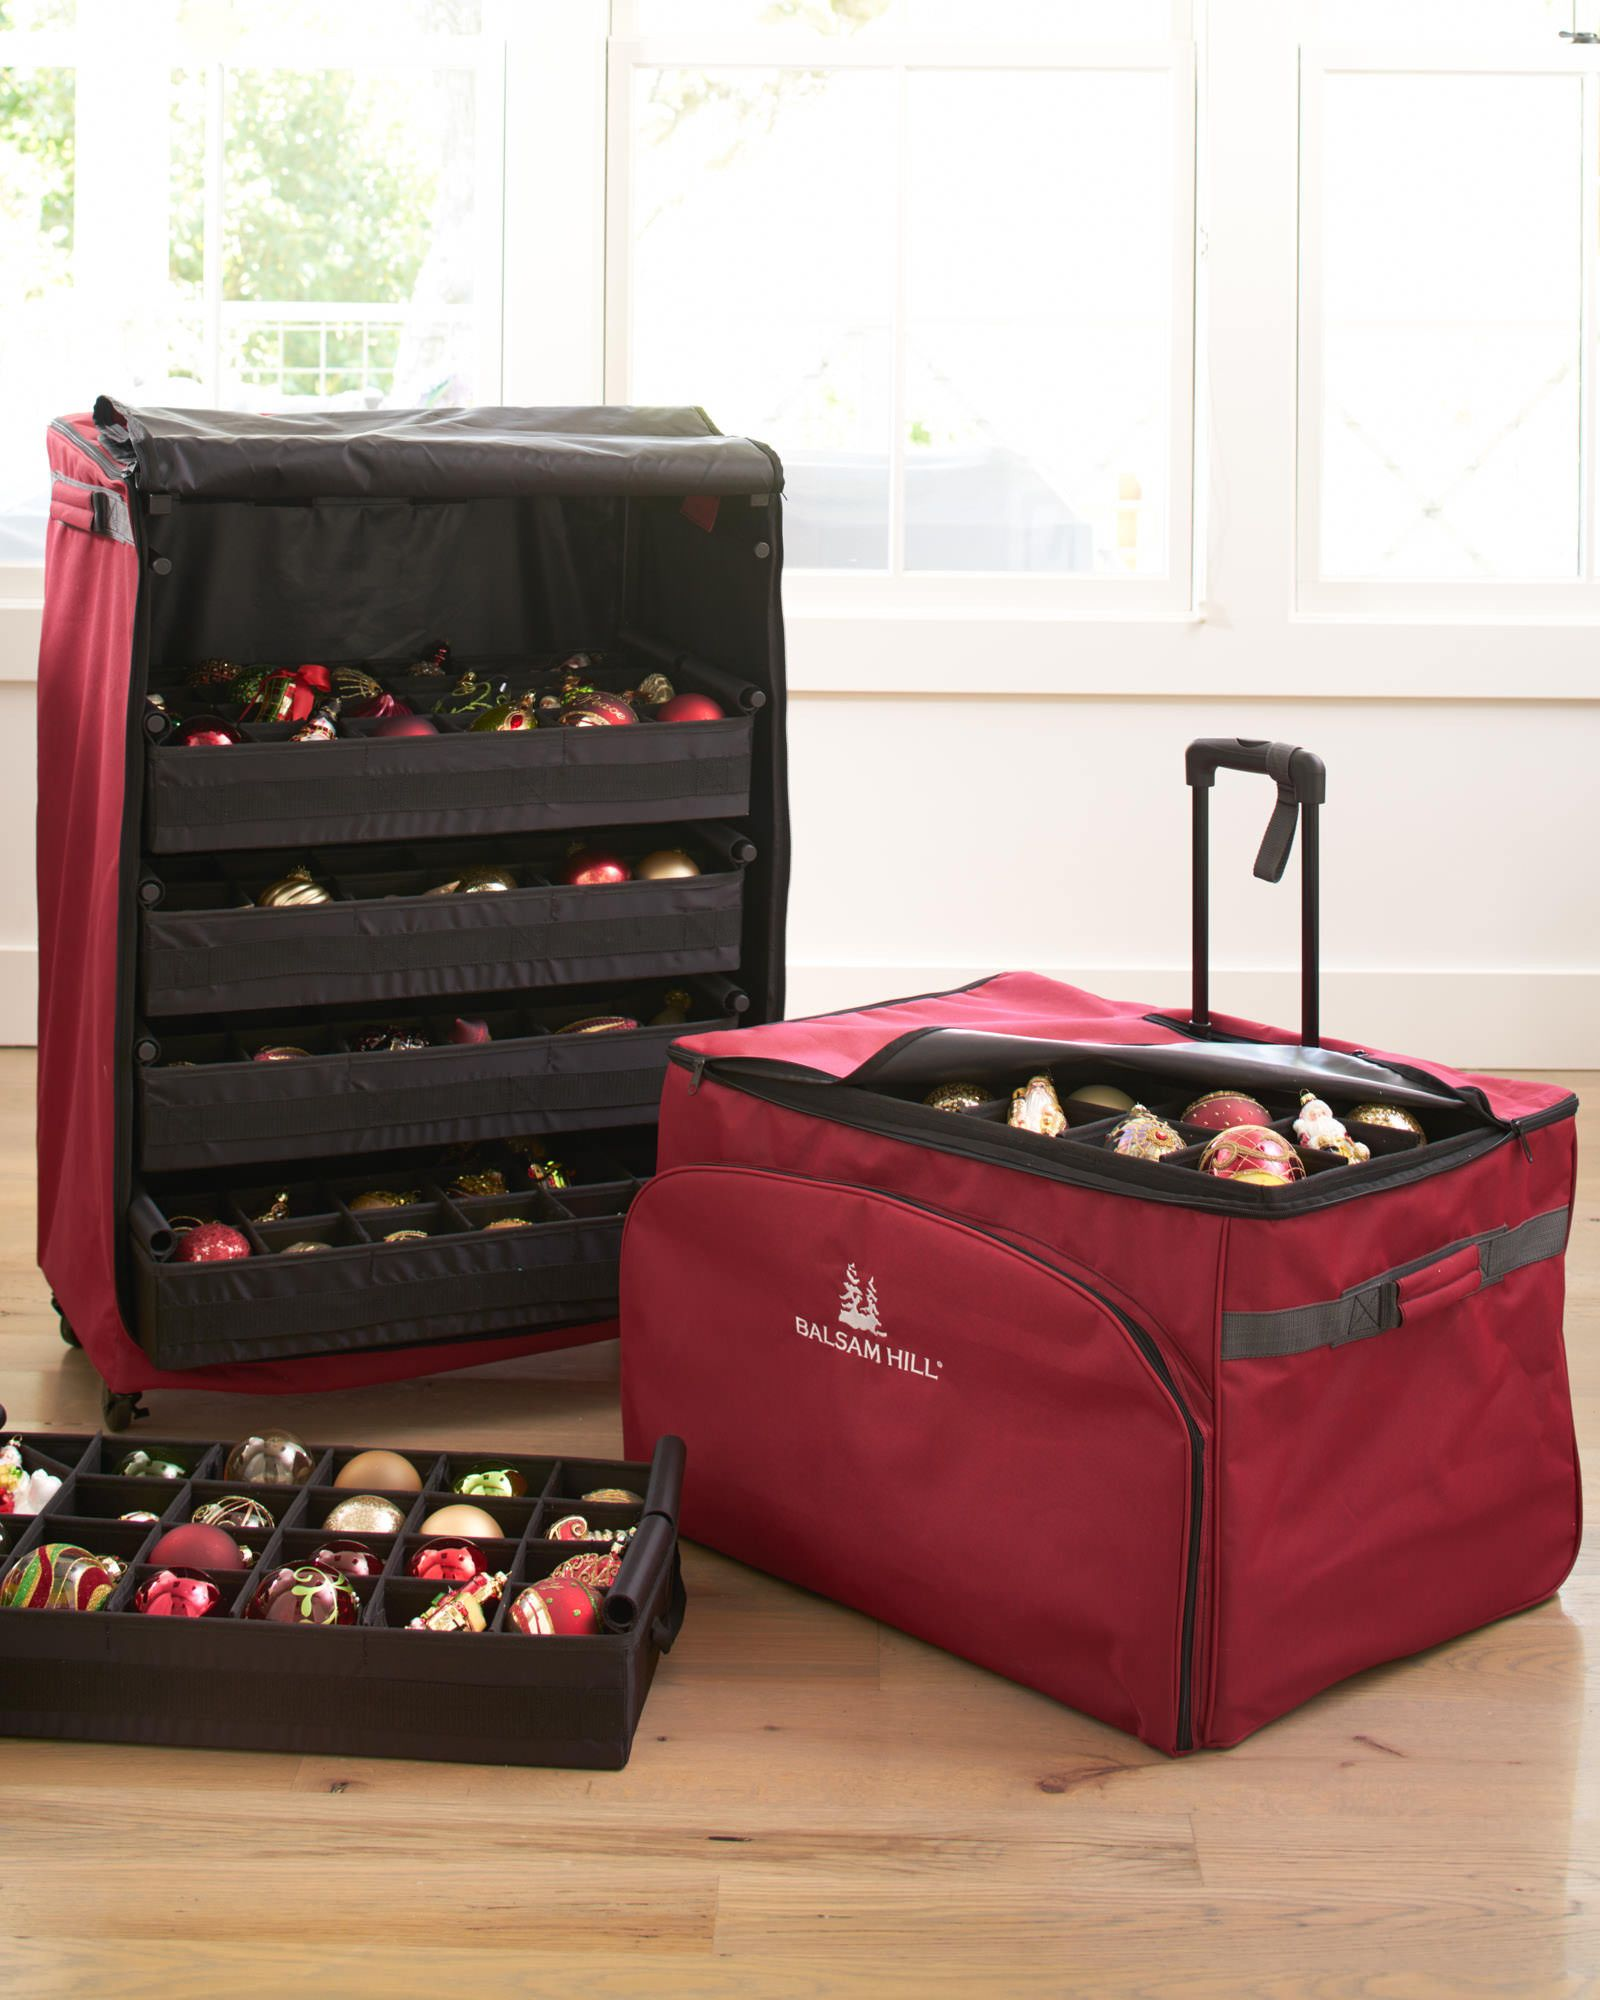 ... 120-Piece Deluxe Rolling Ornament Chest Main ... & Deluxe Rolling Ornament Chest | Balsam Hill